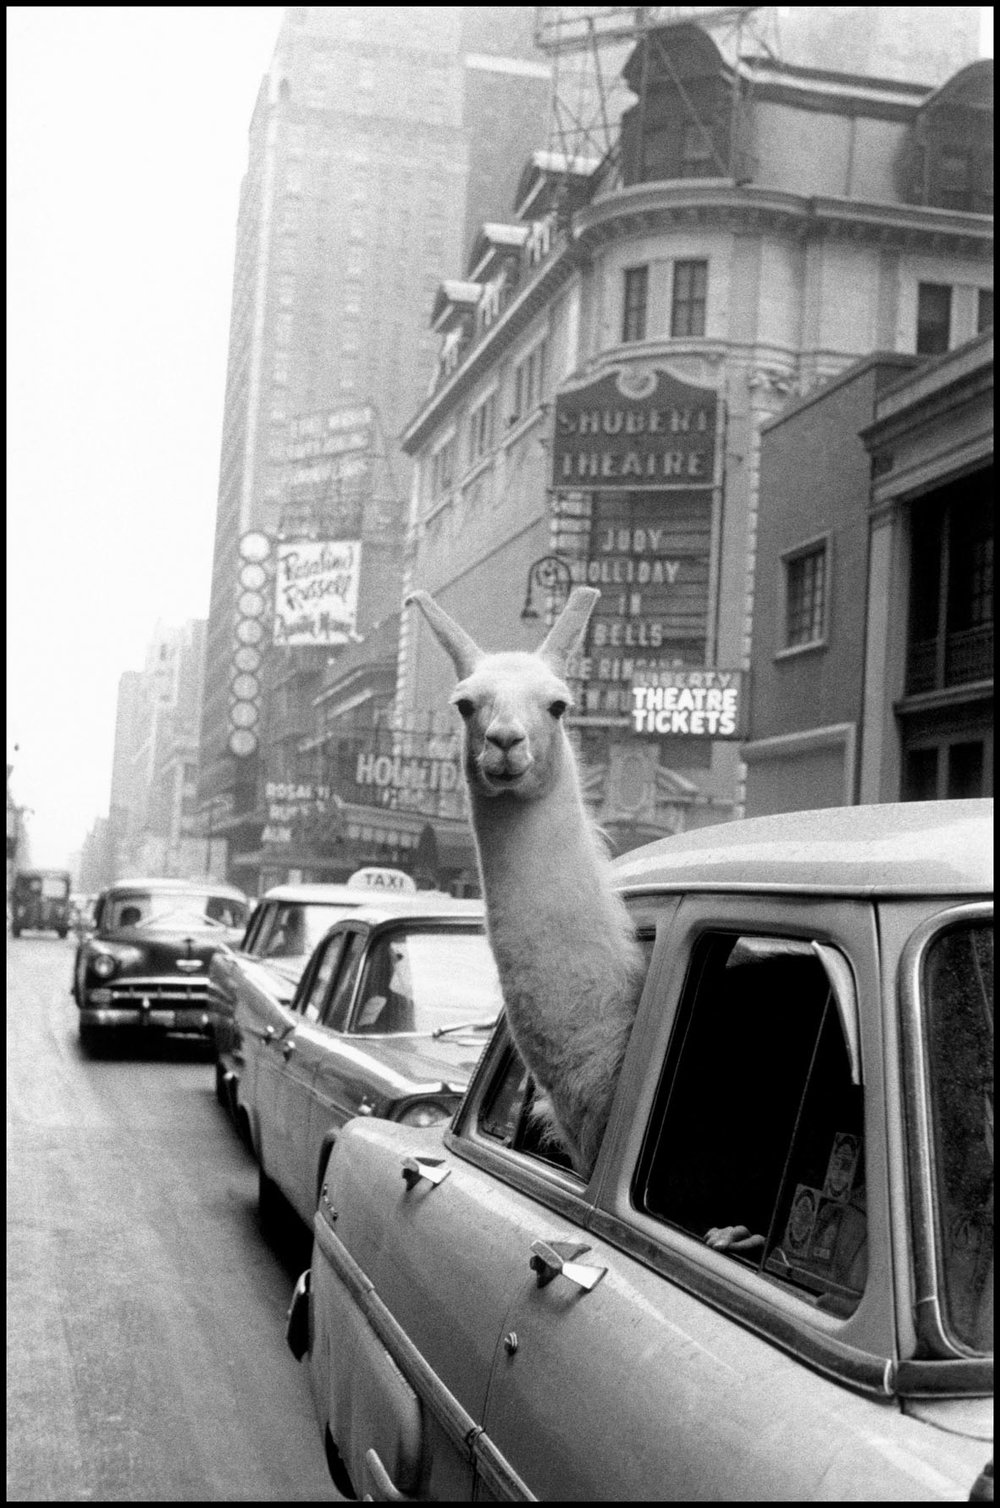 Un lama a Times Square, New York, 1957 | Fotohof Archiv | Inge Morath Foundation | Magnum Photos